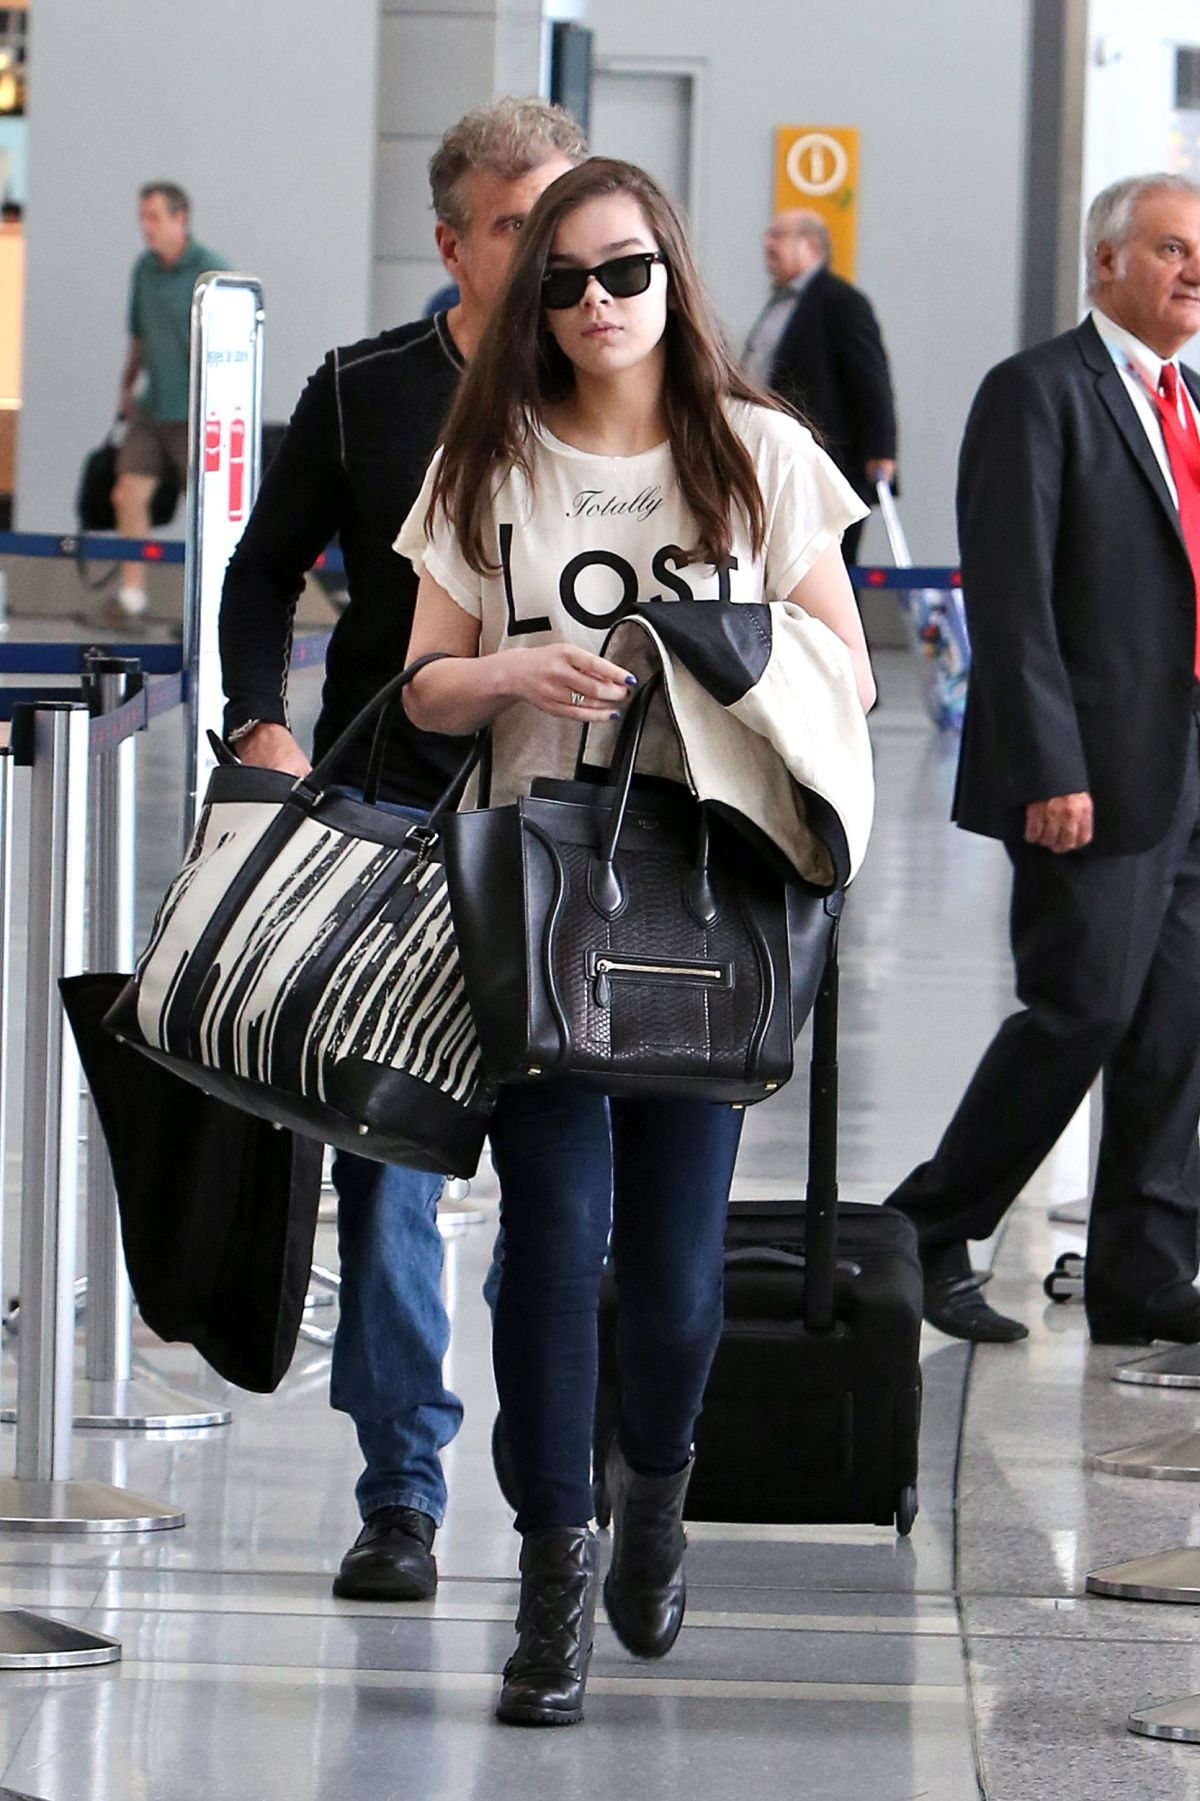 HAILEE STEINFELD at Pearson Airport in Toronto 06/22/2015